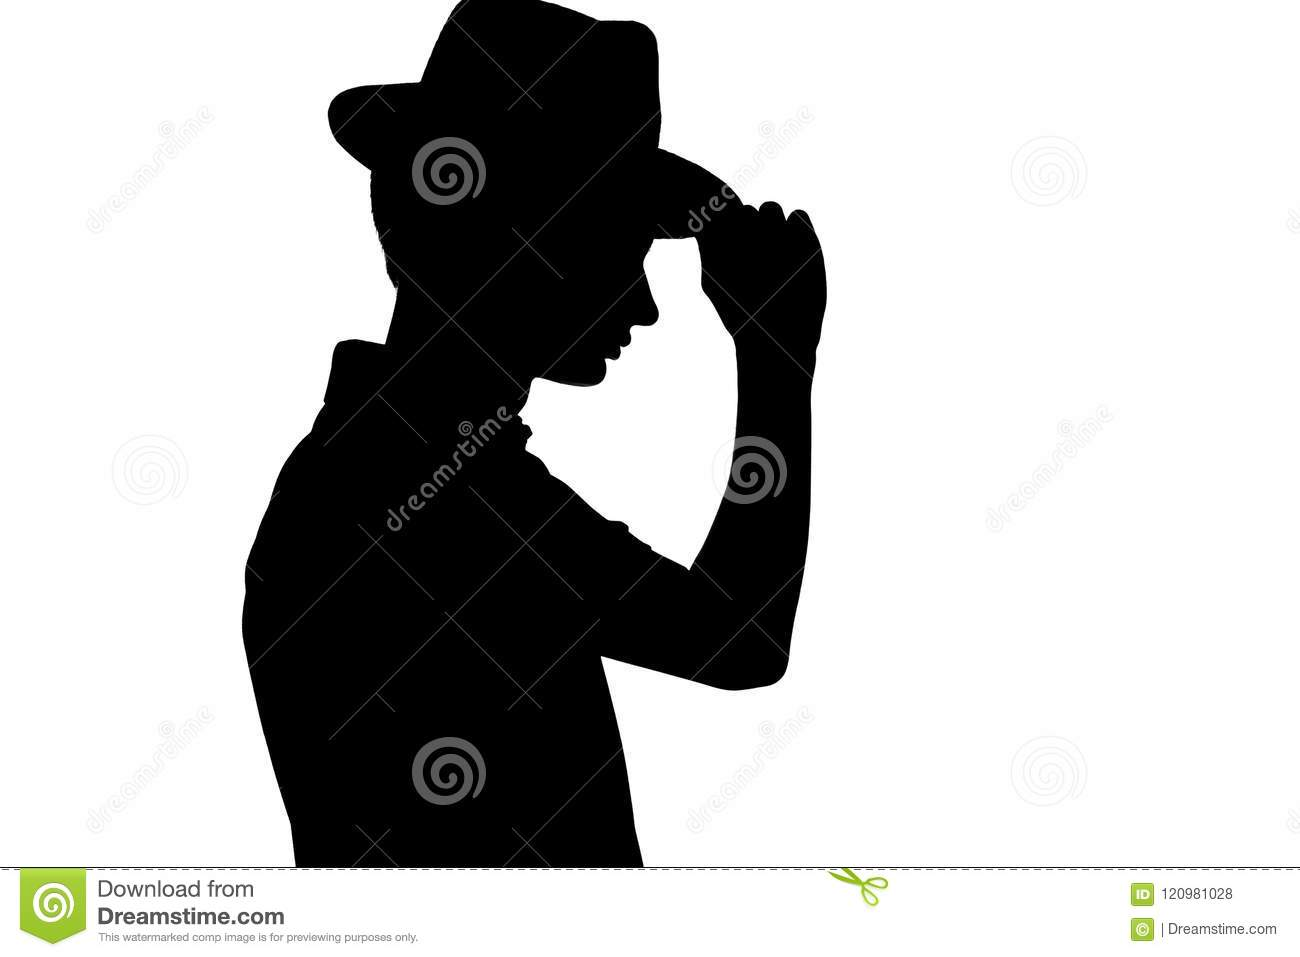 Silhouette of stylish young man in business hat, profile of unrecognizable person on white isolated background